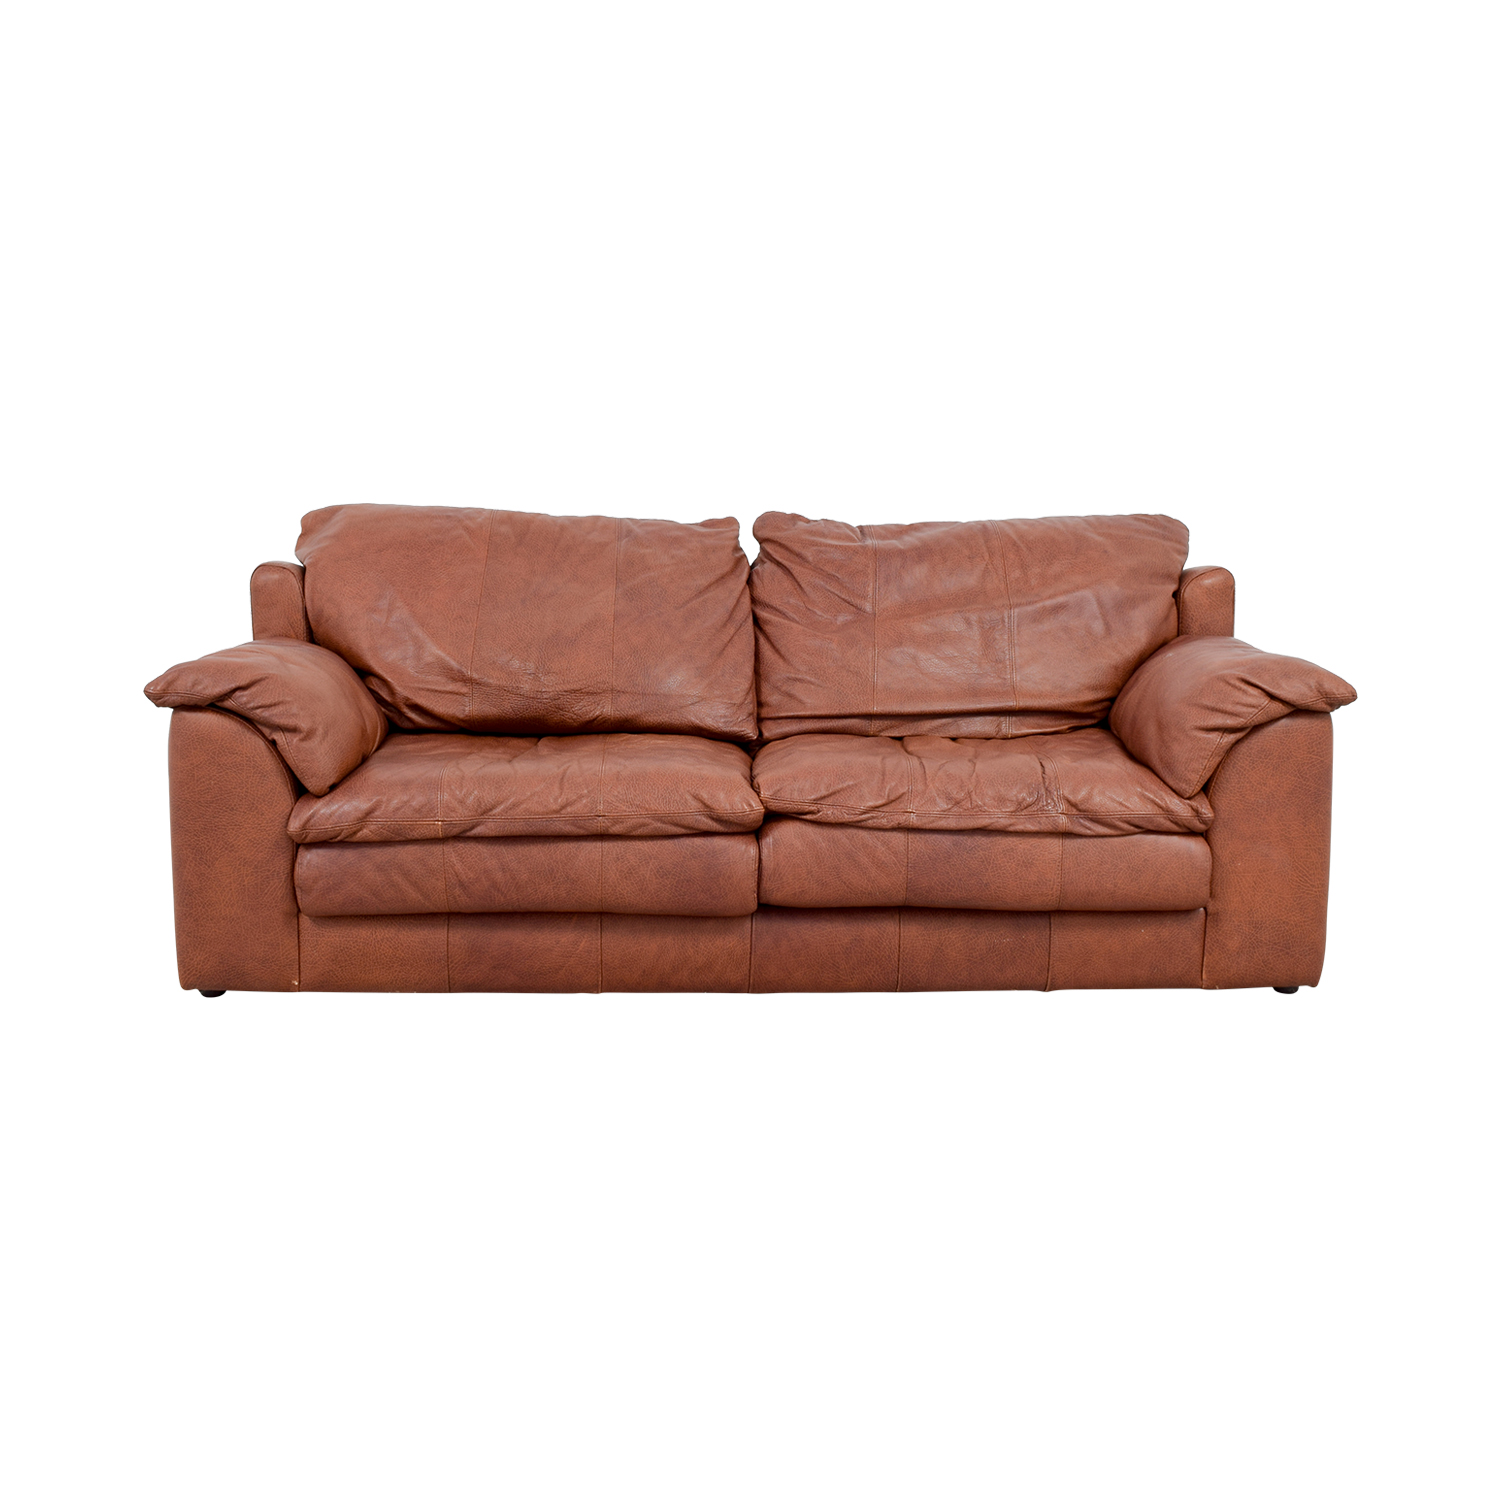 Shop Rust Two Cushion Leather Couch With Pillowed Arms Sofas ...